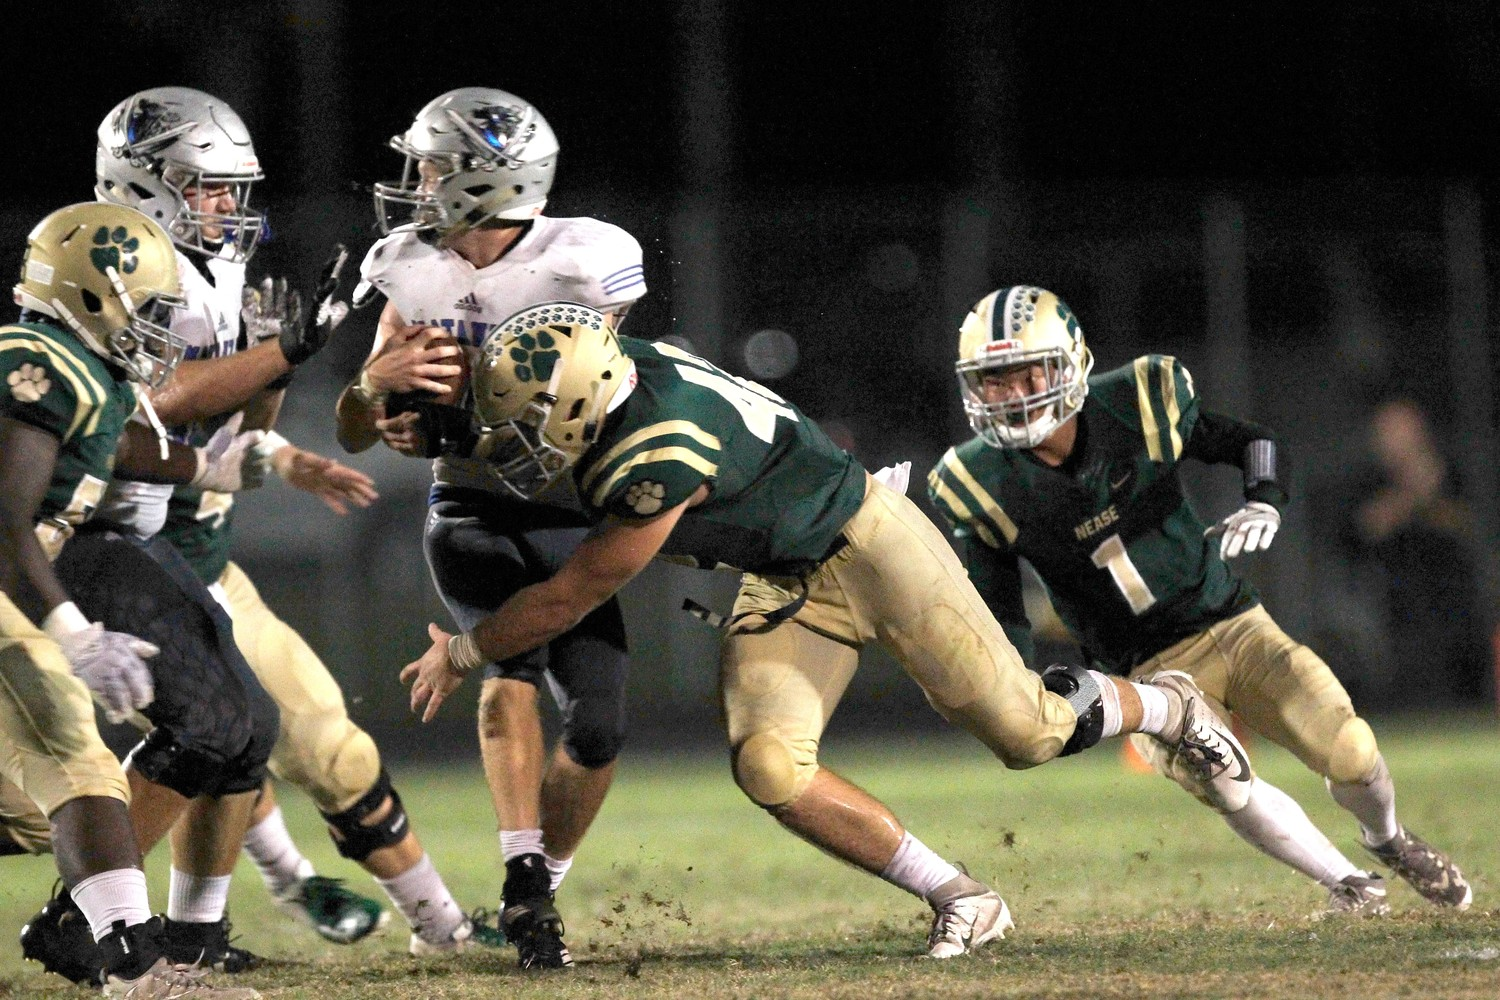 Nease defenders enshroud the Matanzas ball carrier.